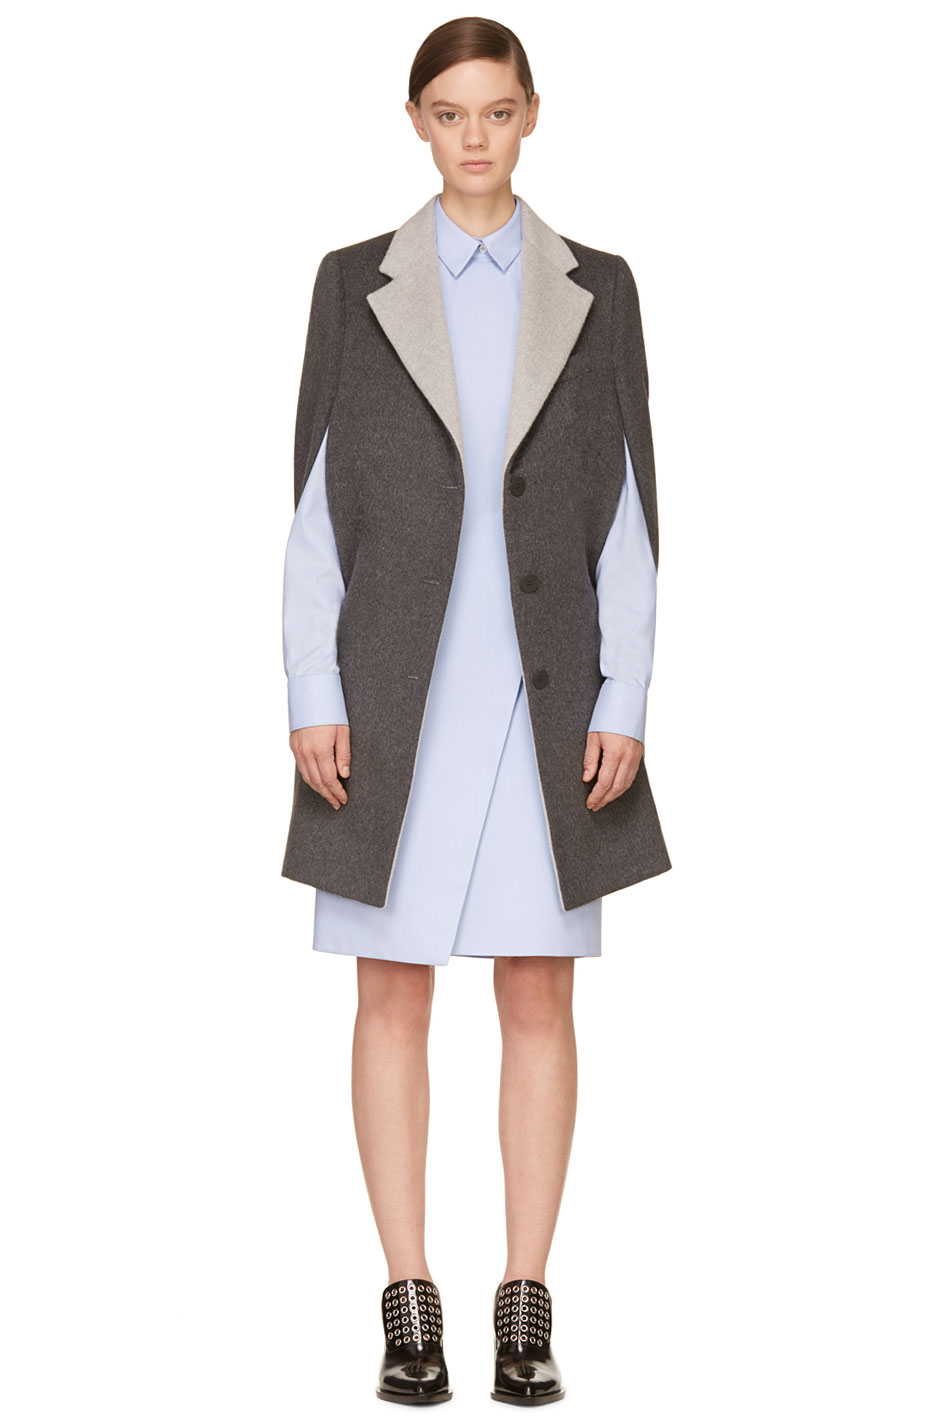 Cape-Coats-For-Fall-Winter-2014-2015-1